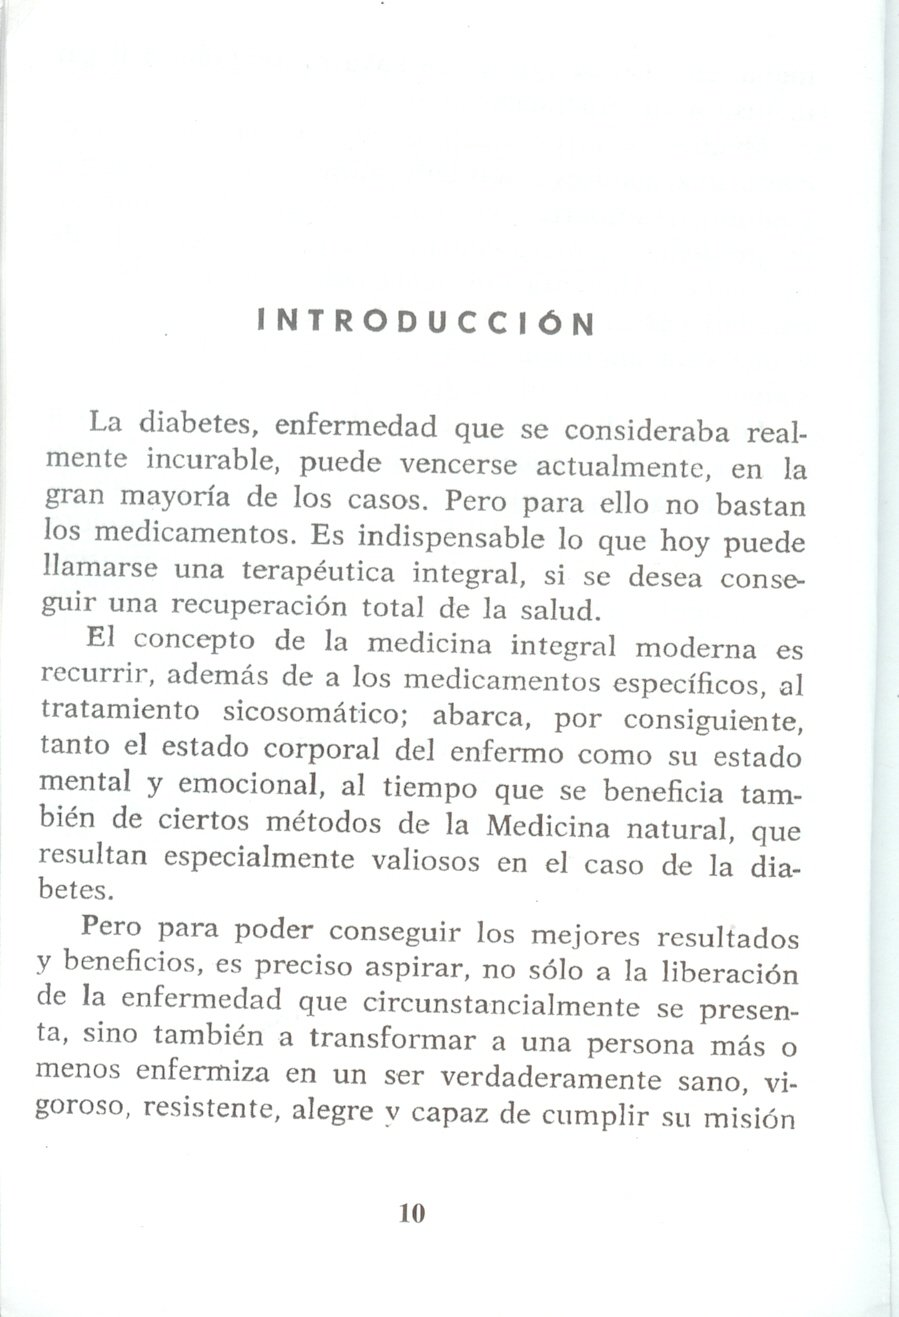 Diabetes (Spanish Edition): Vander, Berbera Editores: 9789707830868: Amazon.com: Books